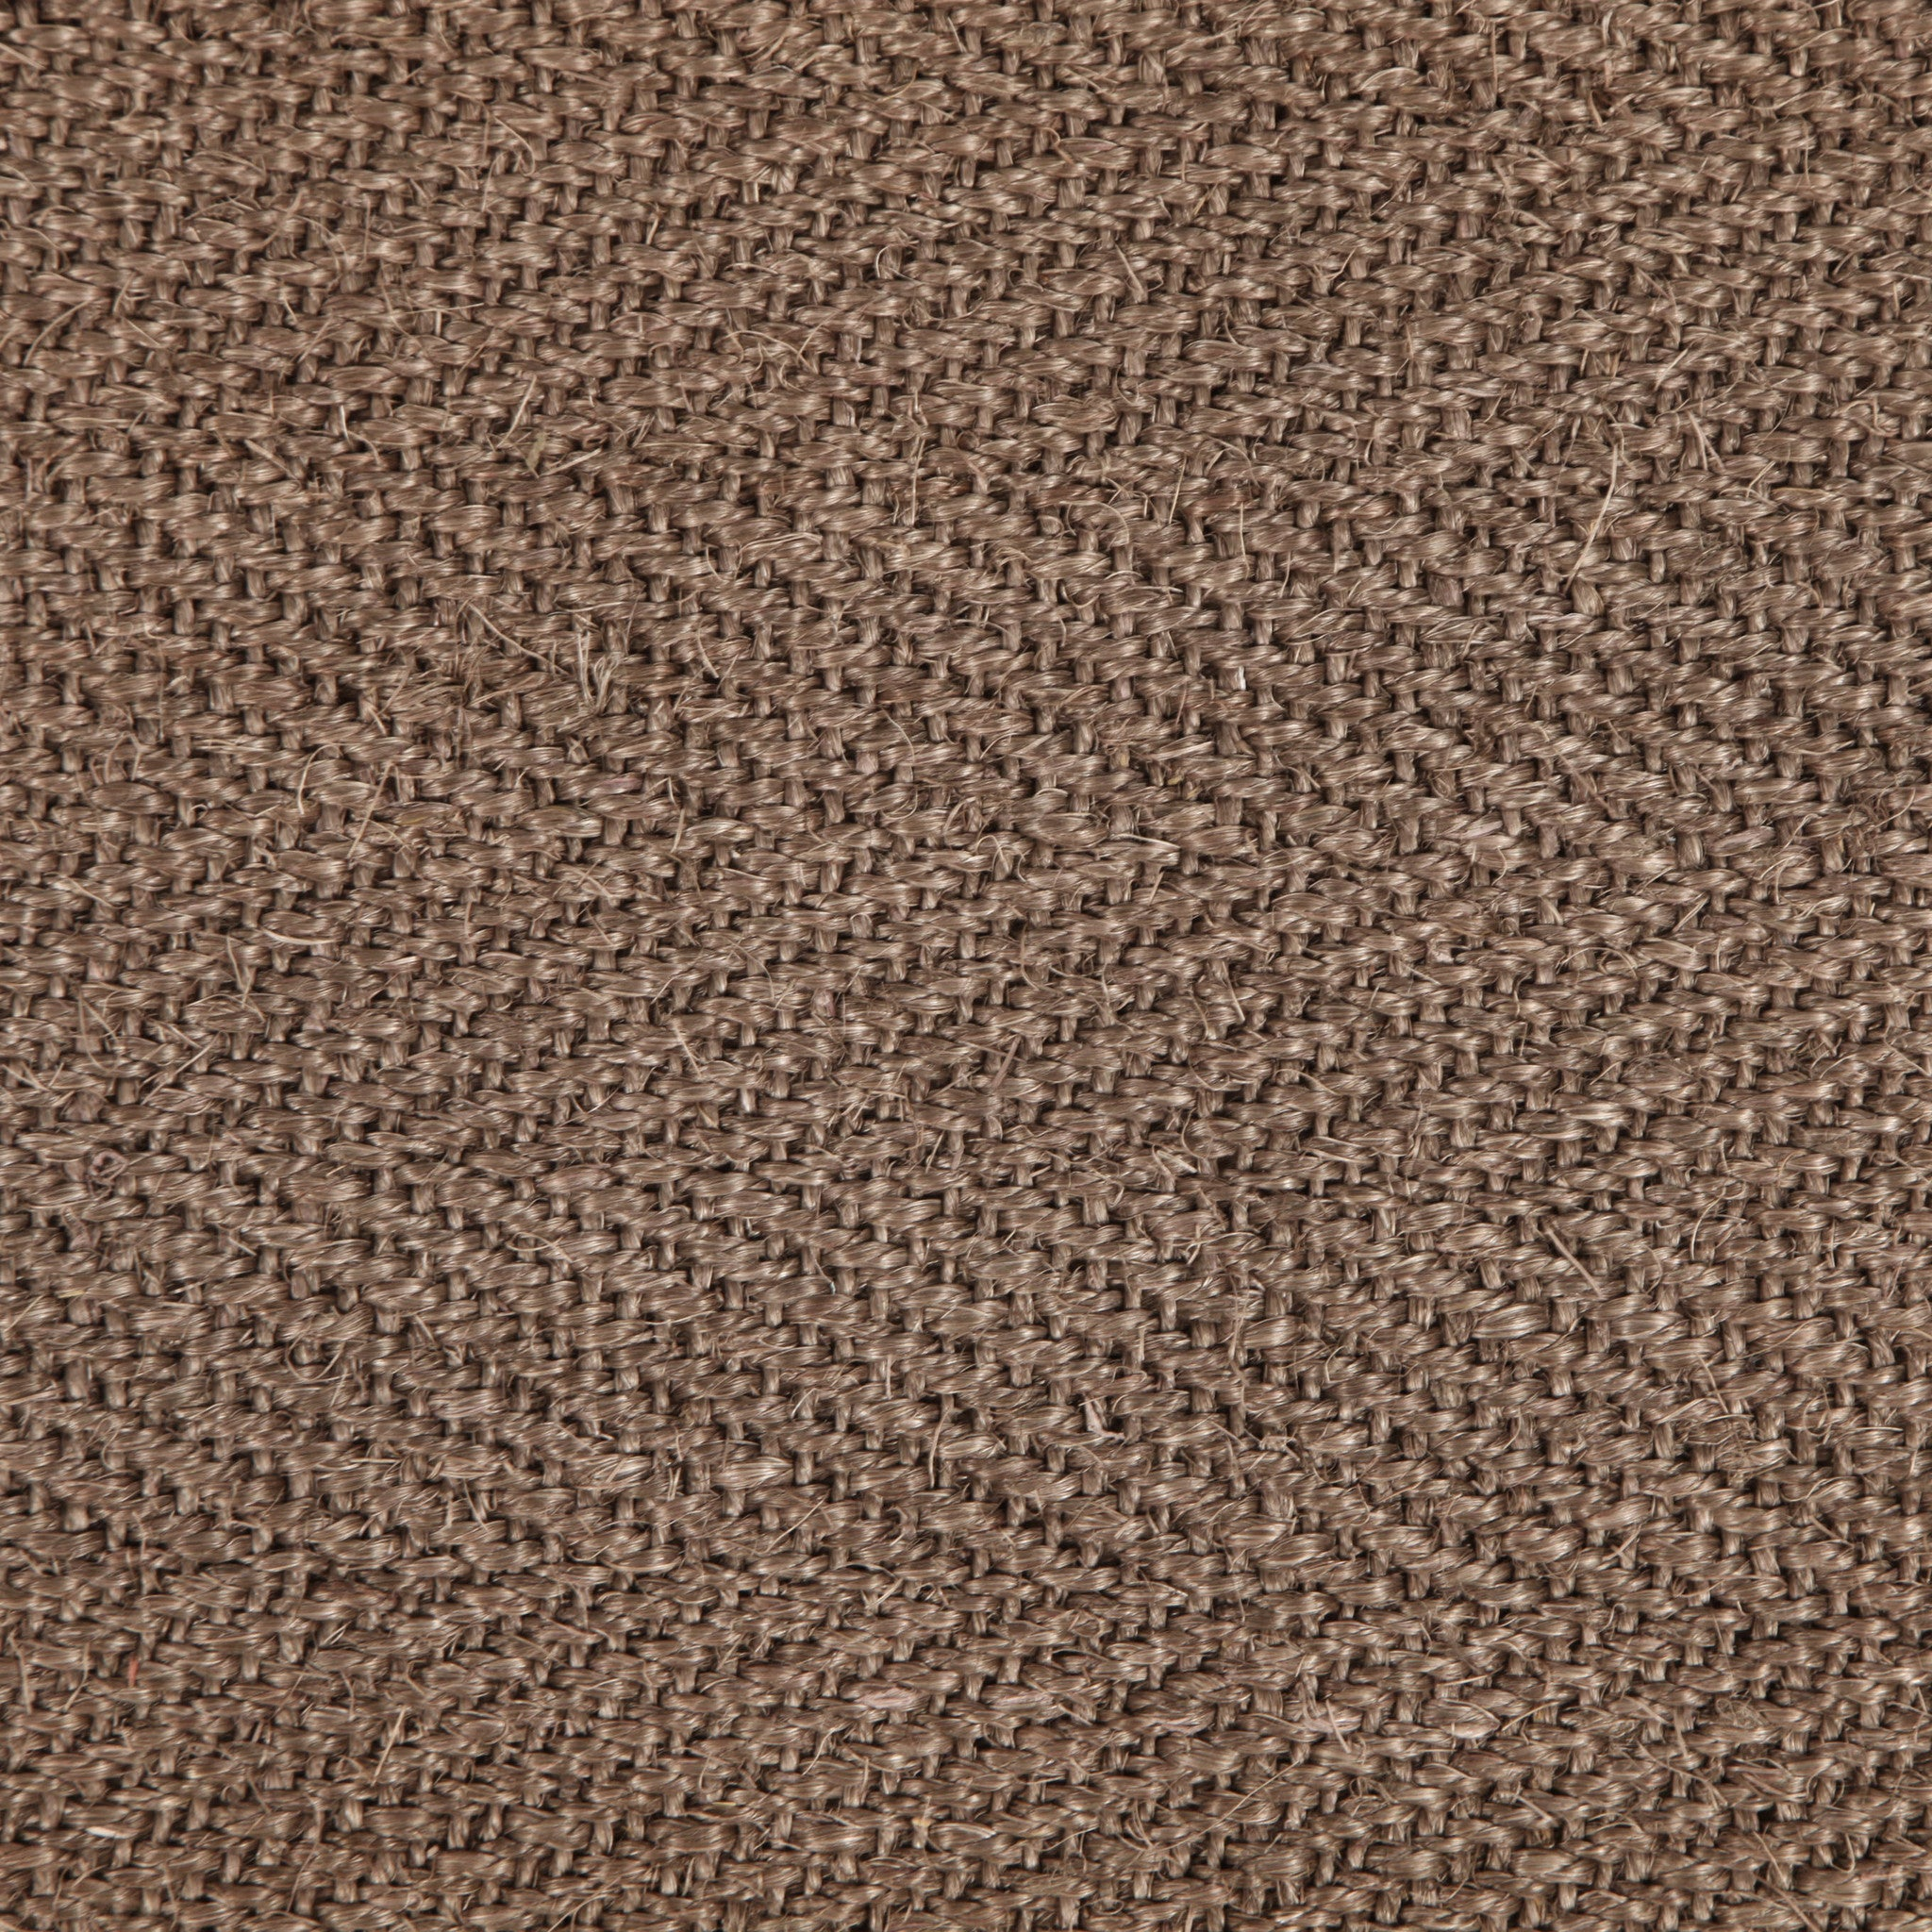 Natural Sisal Rug Herring Bone Brown